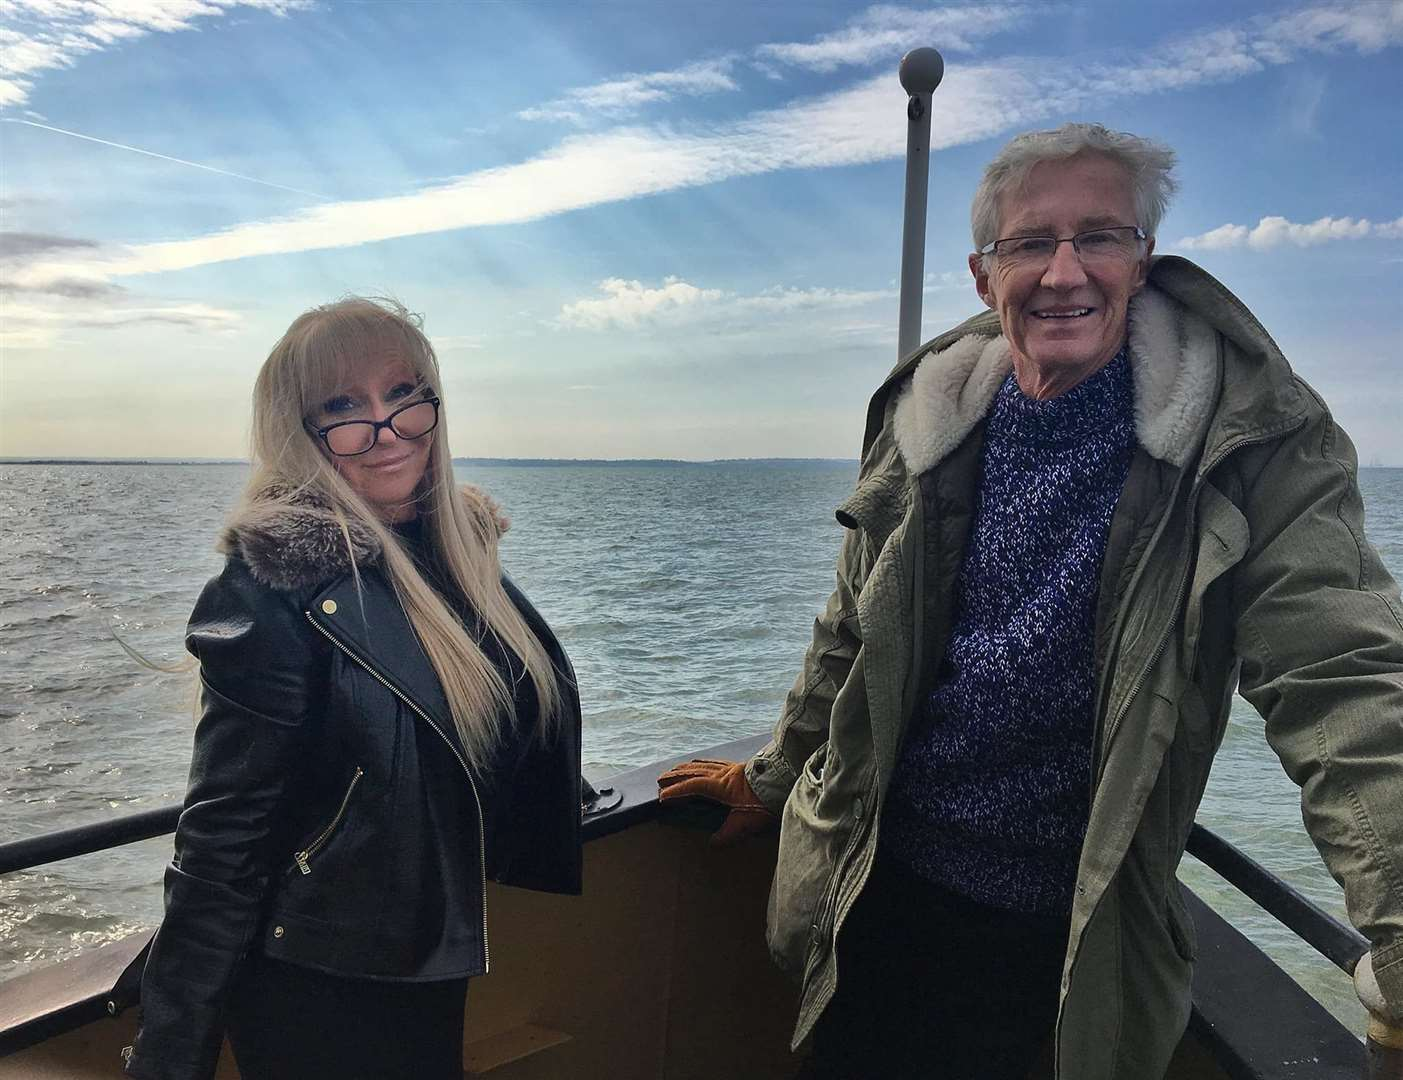 Margaret Flo McEwan heading to the Second World War Maunsell sea forts from Sheppey with Paul O'Grady for a TV programme